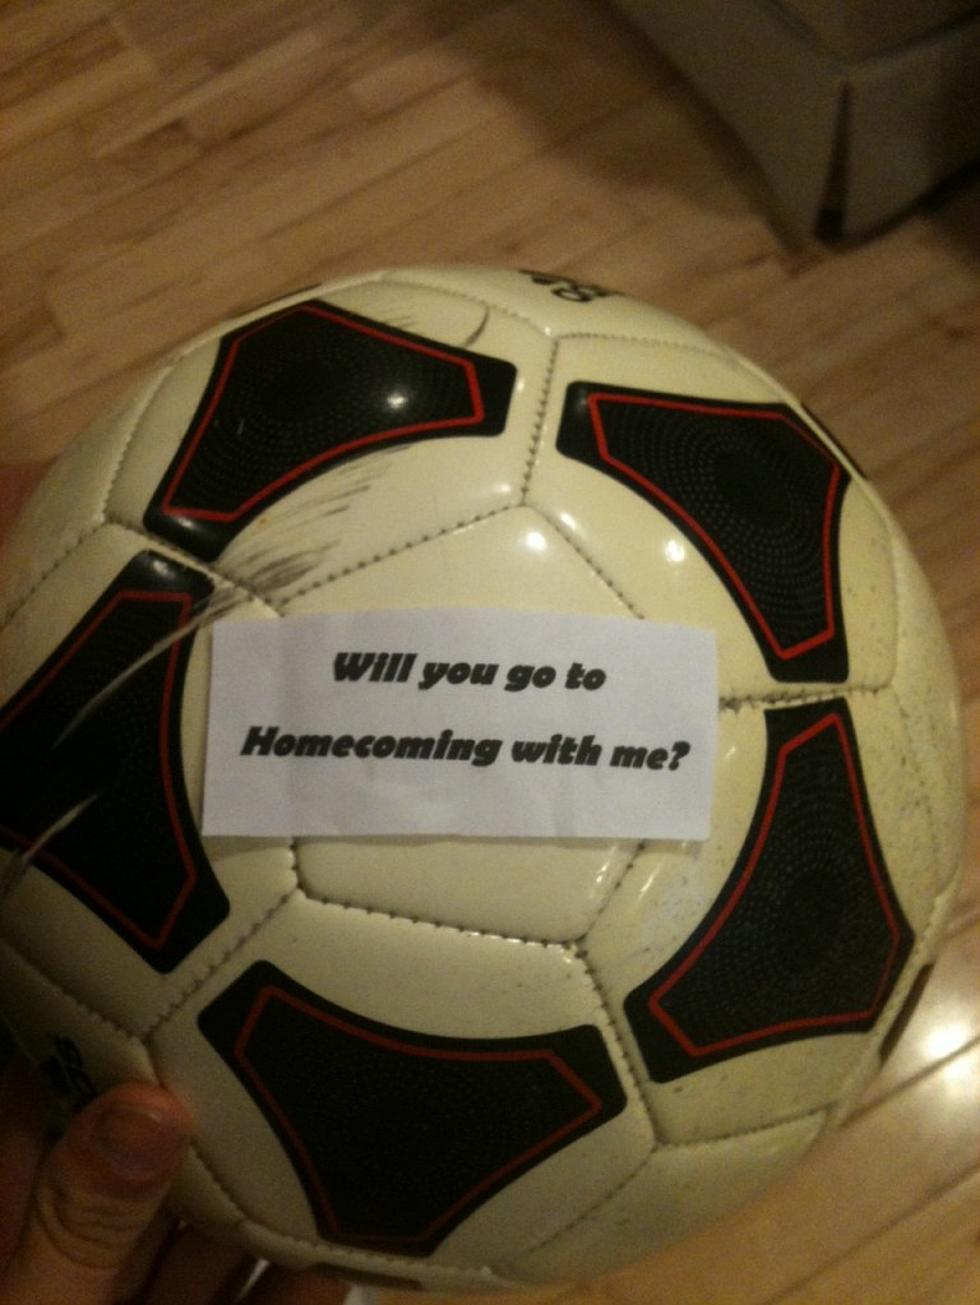 What Are Some Creative Ways To Ask A Girl To Homecoming